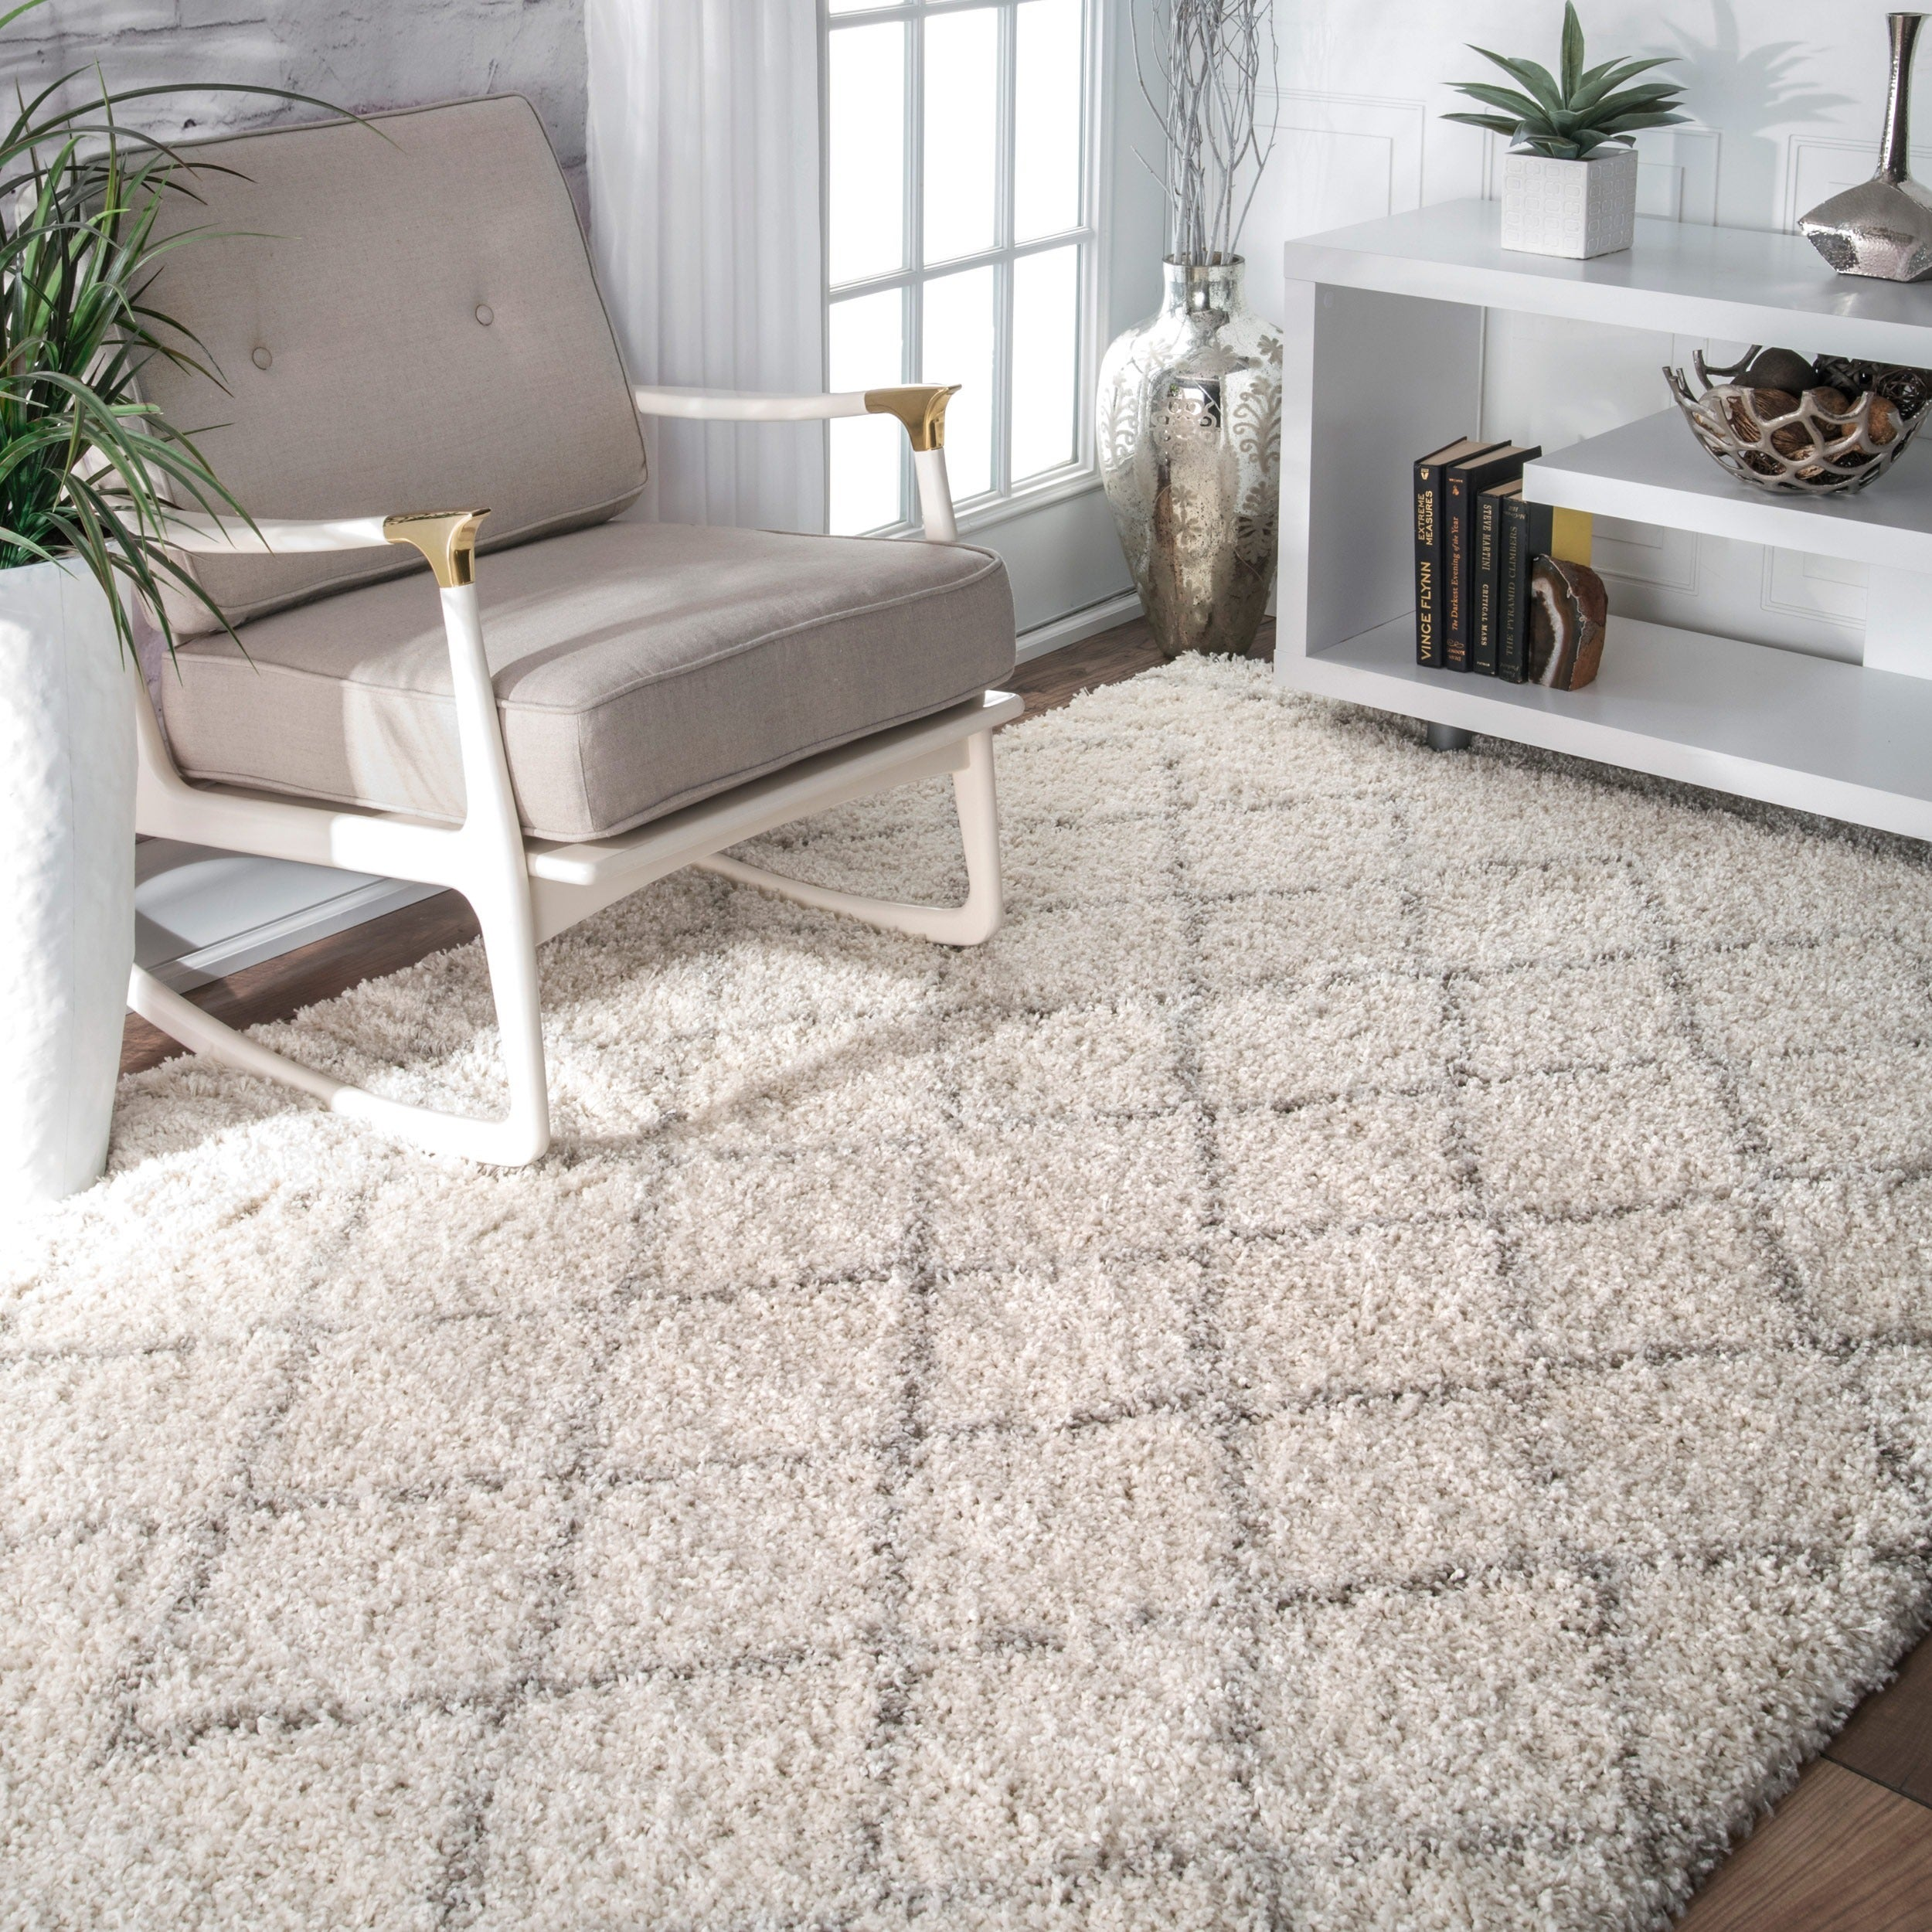 Nuloom Soft And Plush Moroccan Trellis Natural Rug 5 X27